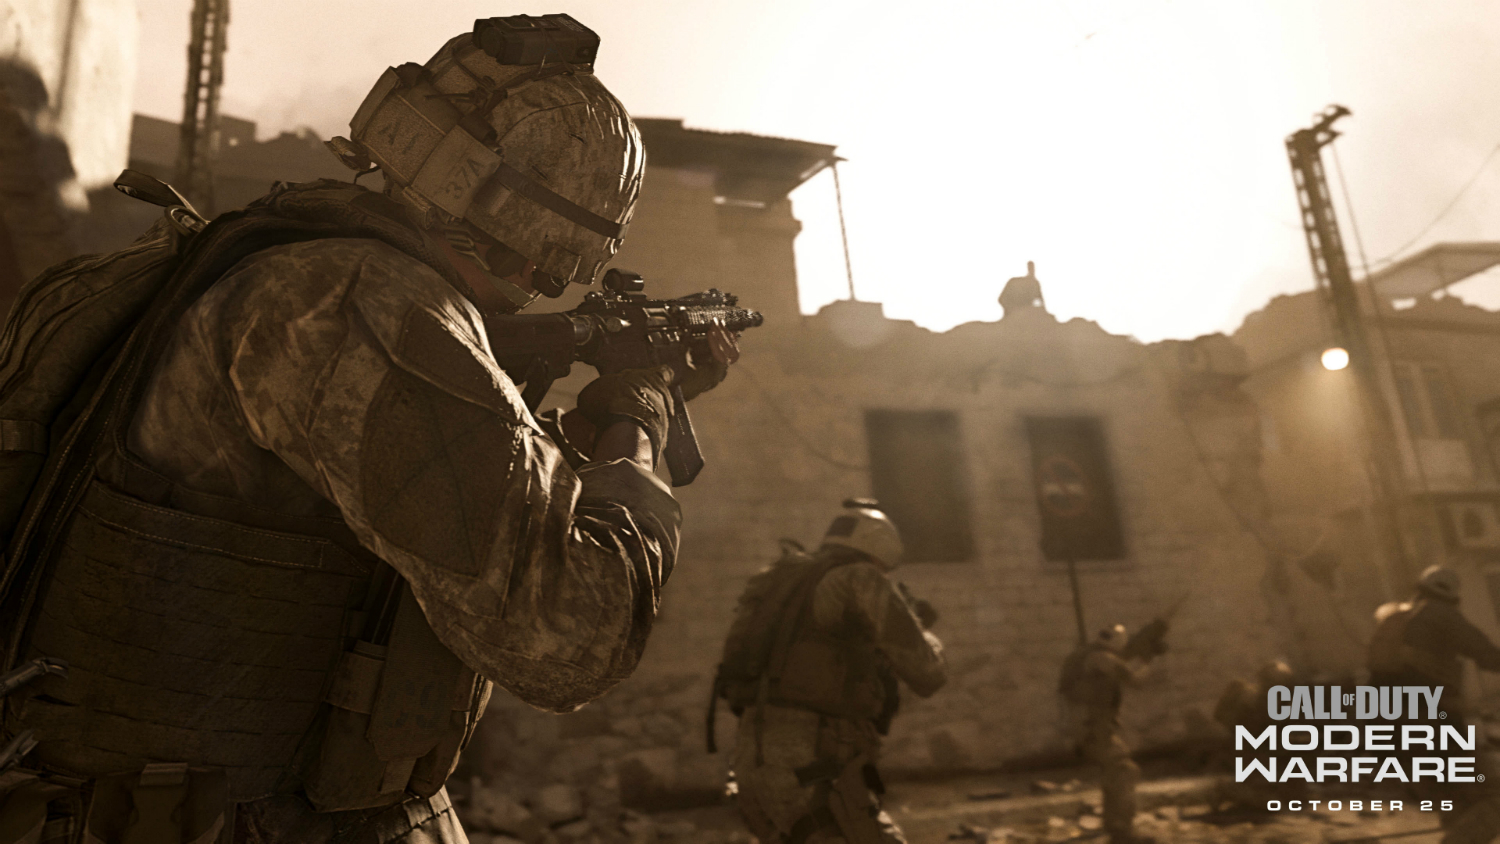 Call of Duty Modern Warfare: News, Trailer and Release Date